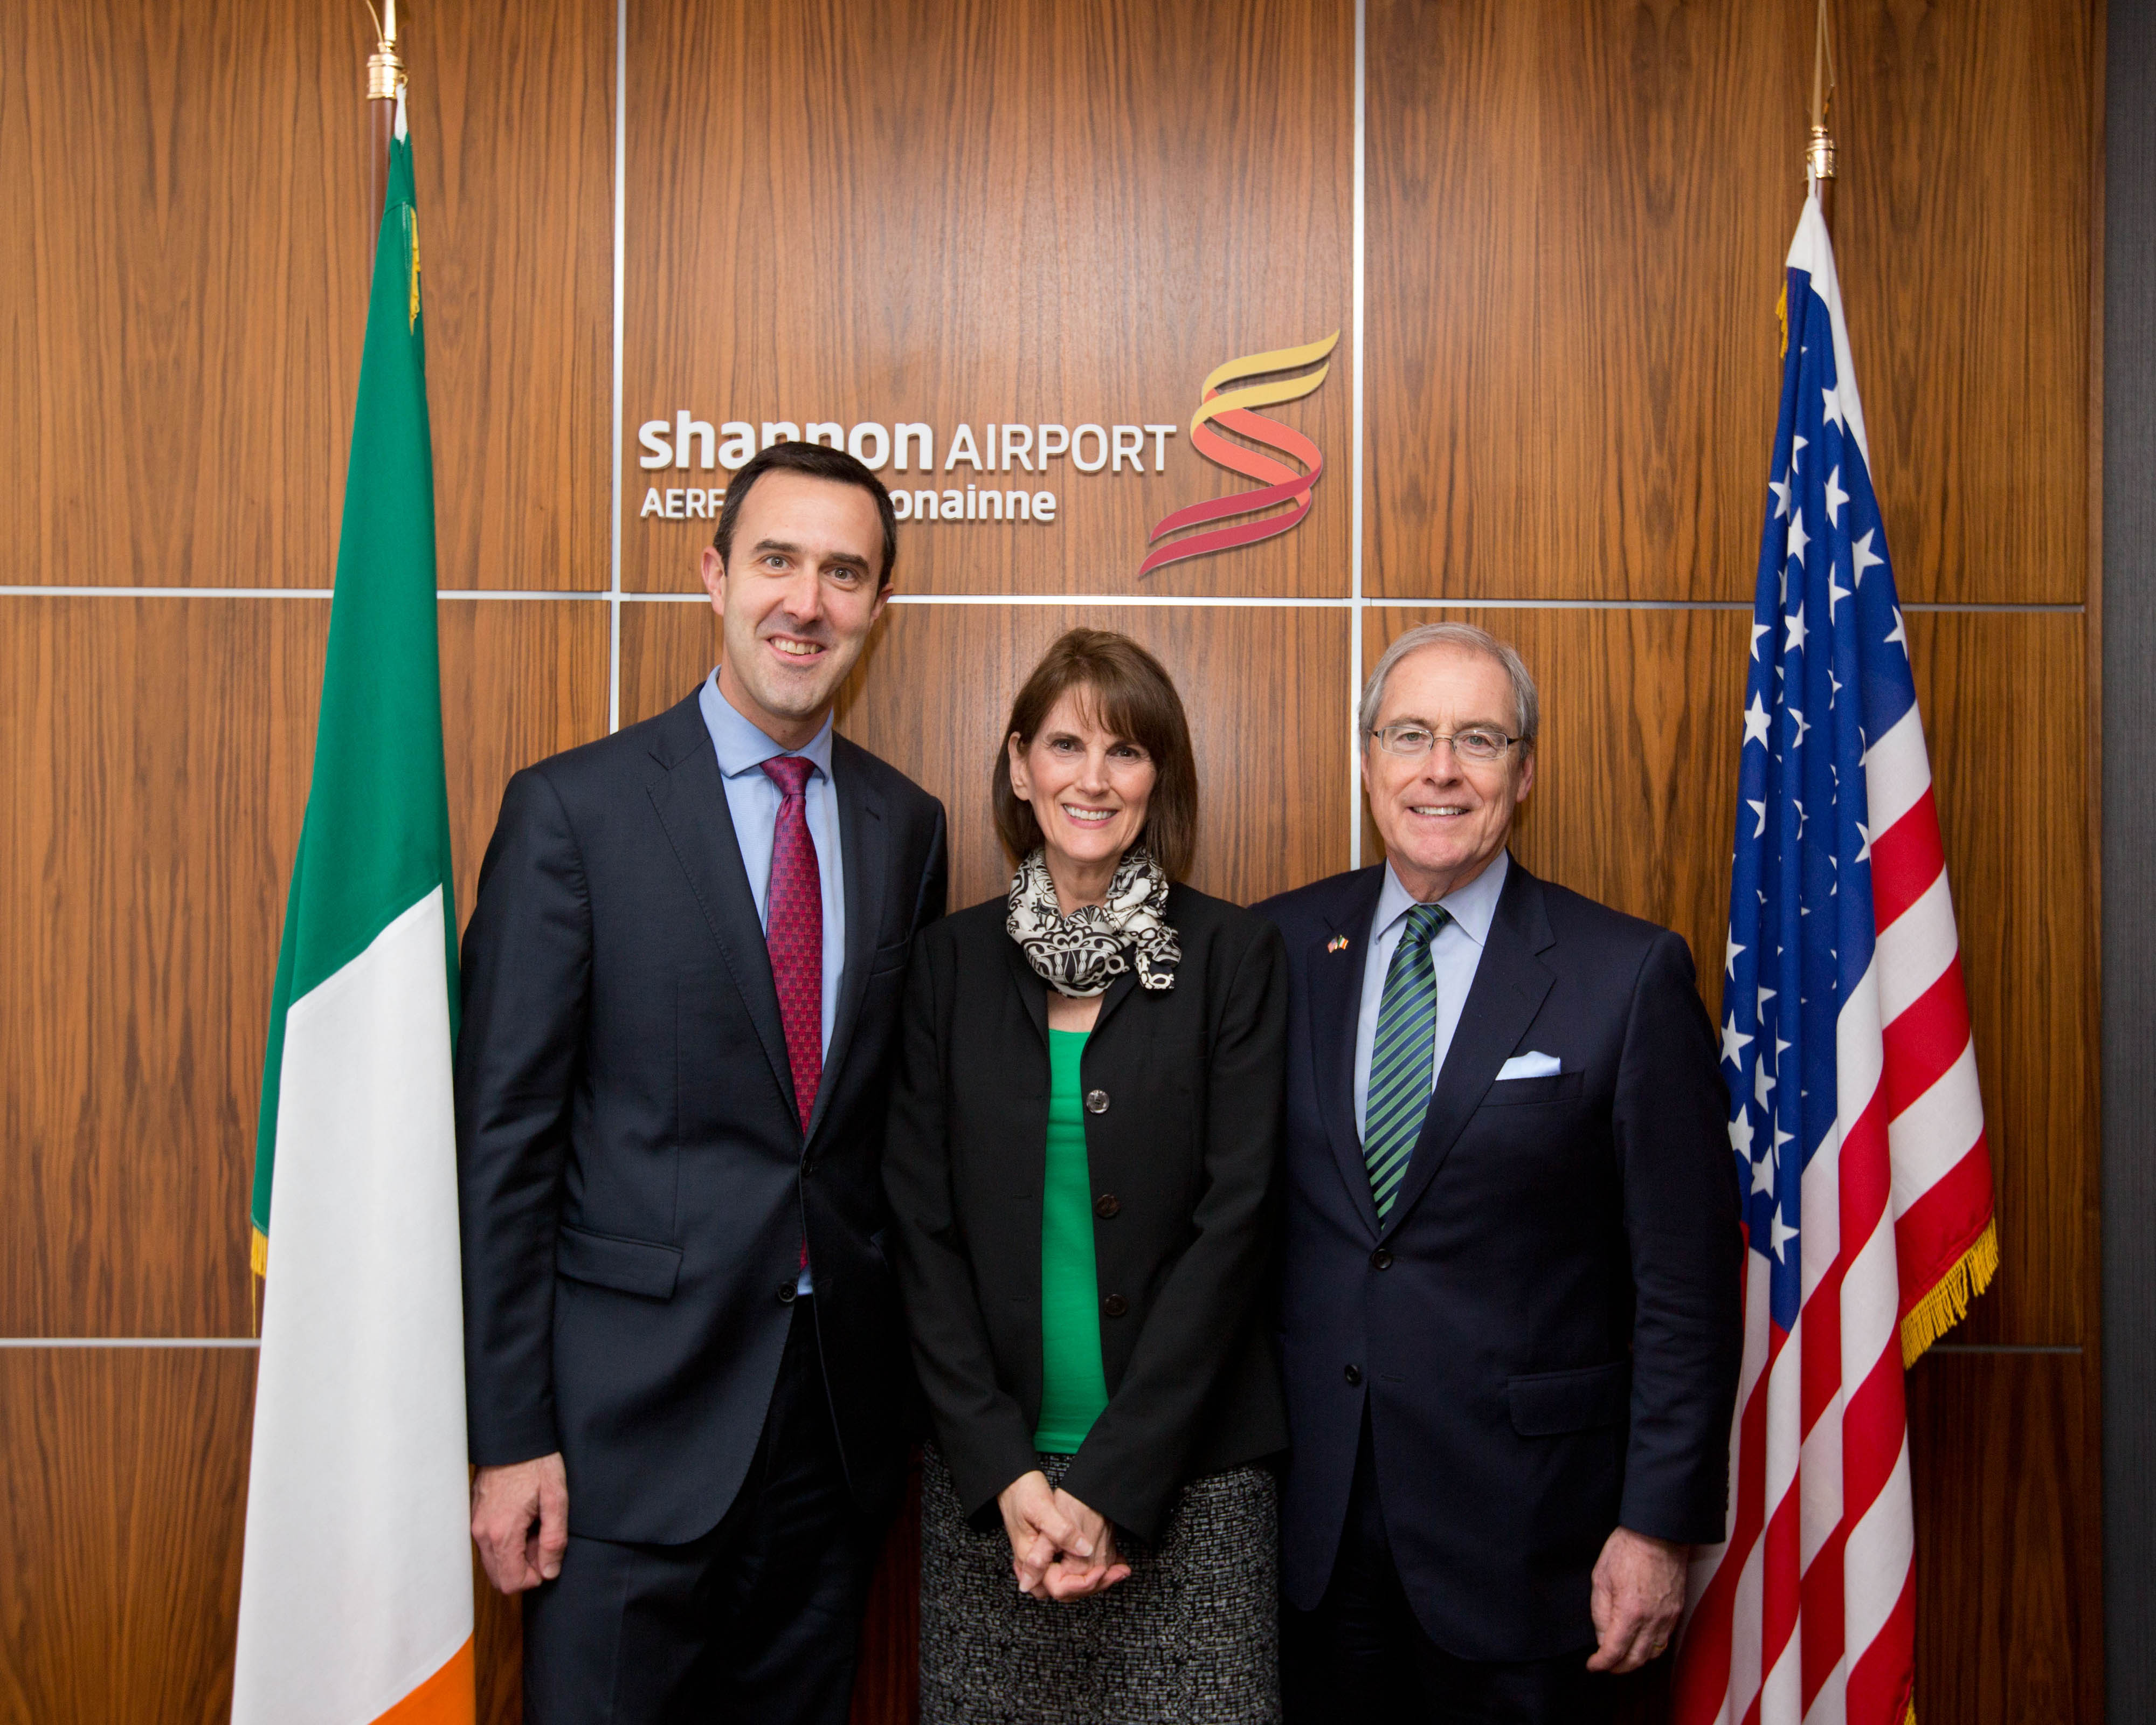 Andrew Murphy, Chief Commercial Officer Shannon Airport greets newly appointed US Ambassador to Ireland Kevin OÕMalley and his wife Dena at Shannon Airport.  Ambassador OÕMalley was making his first visit to Shannon since his appointment five weeks ago to the post.  Pic Sean Curtin Photo.